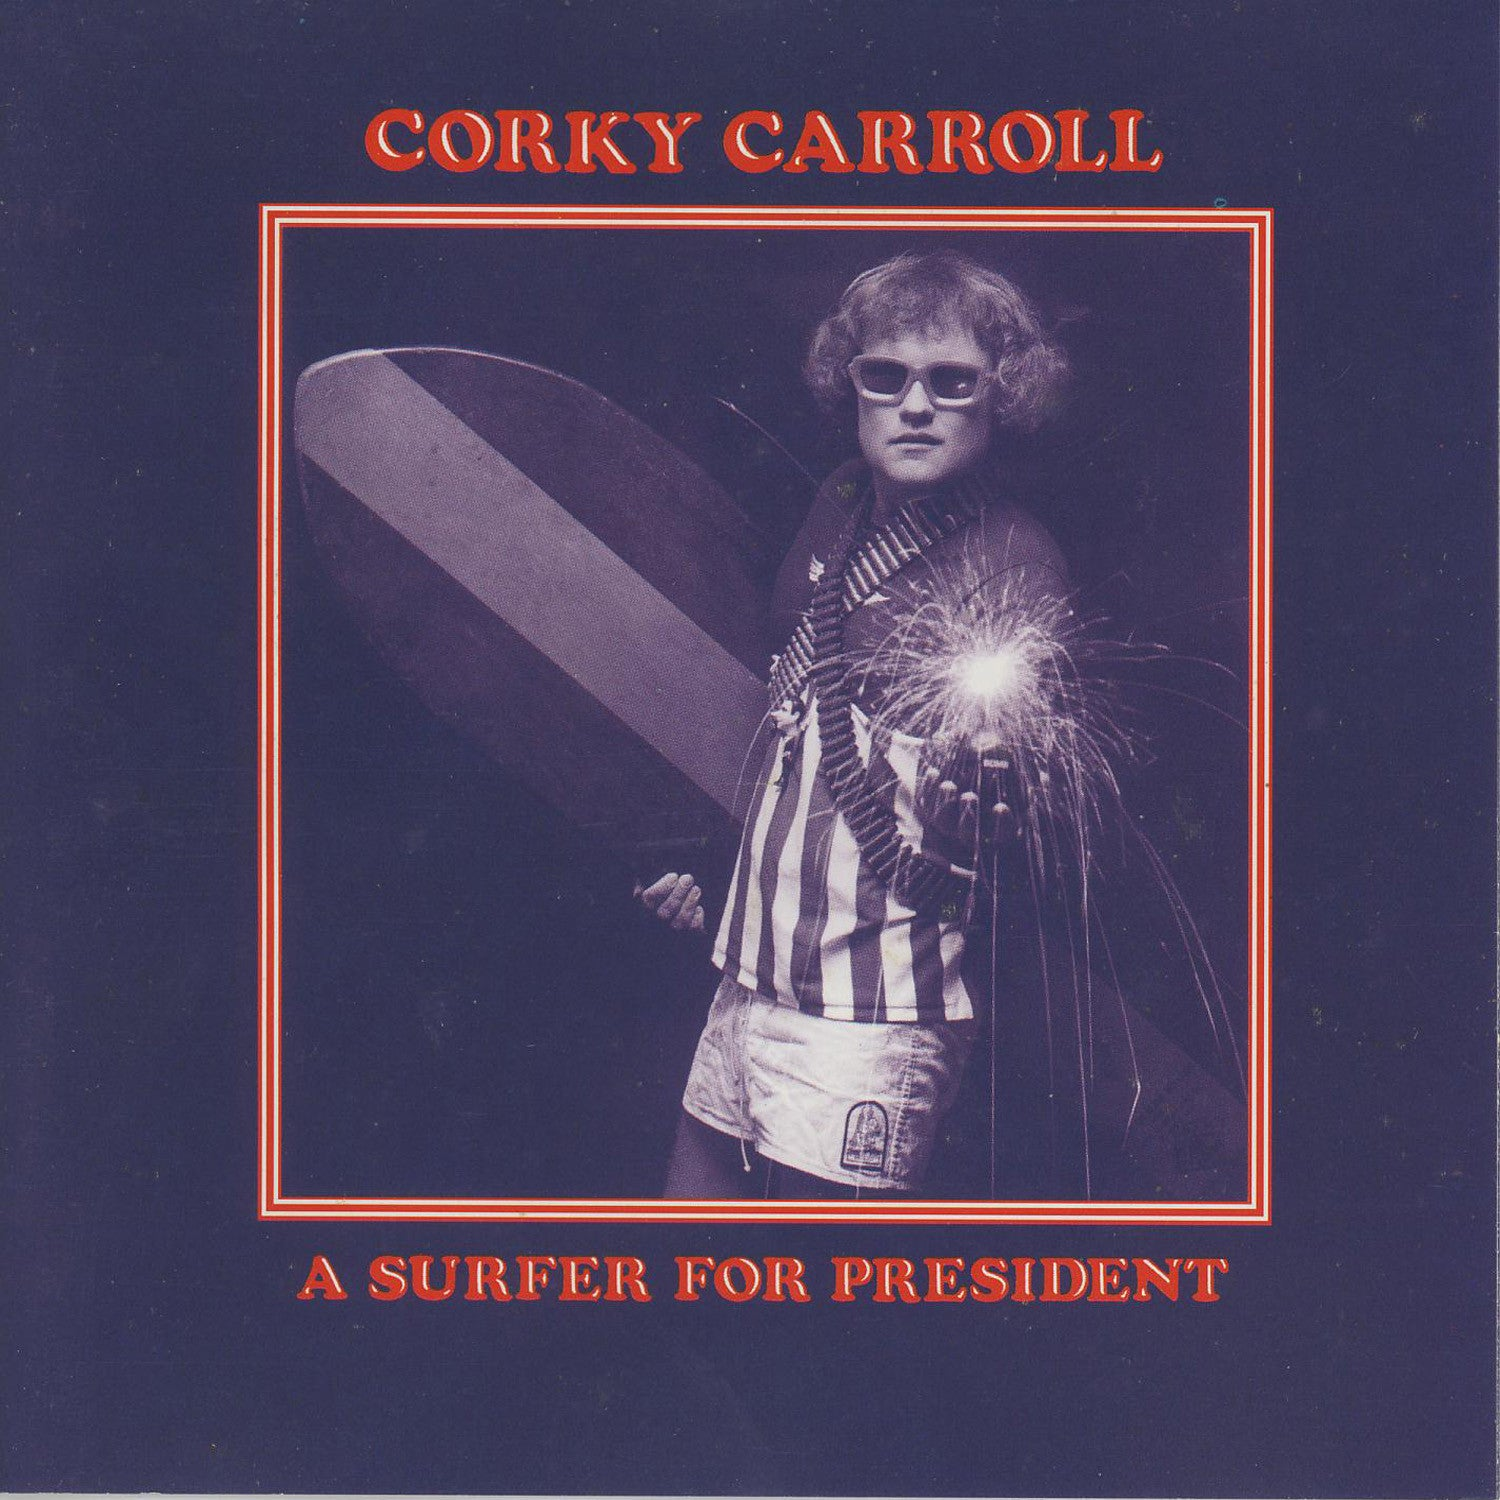 Corky Carroll - A Surfer for President